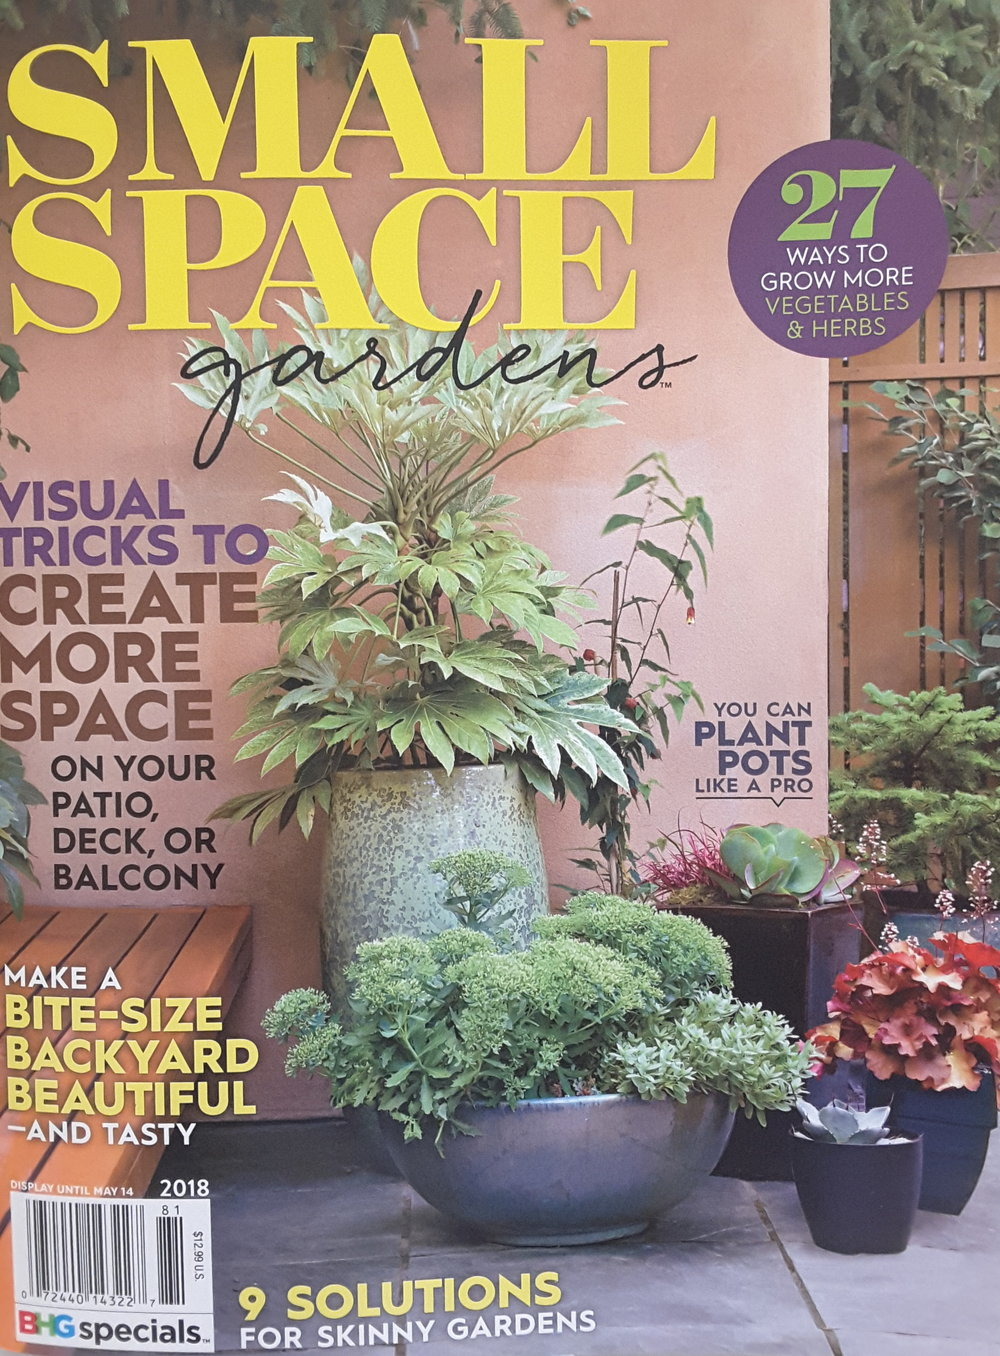 Our San Clemente Design featured in Small Gardens magazine.